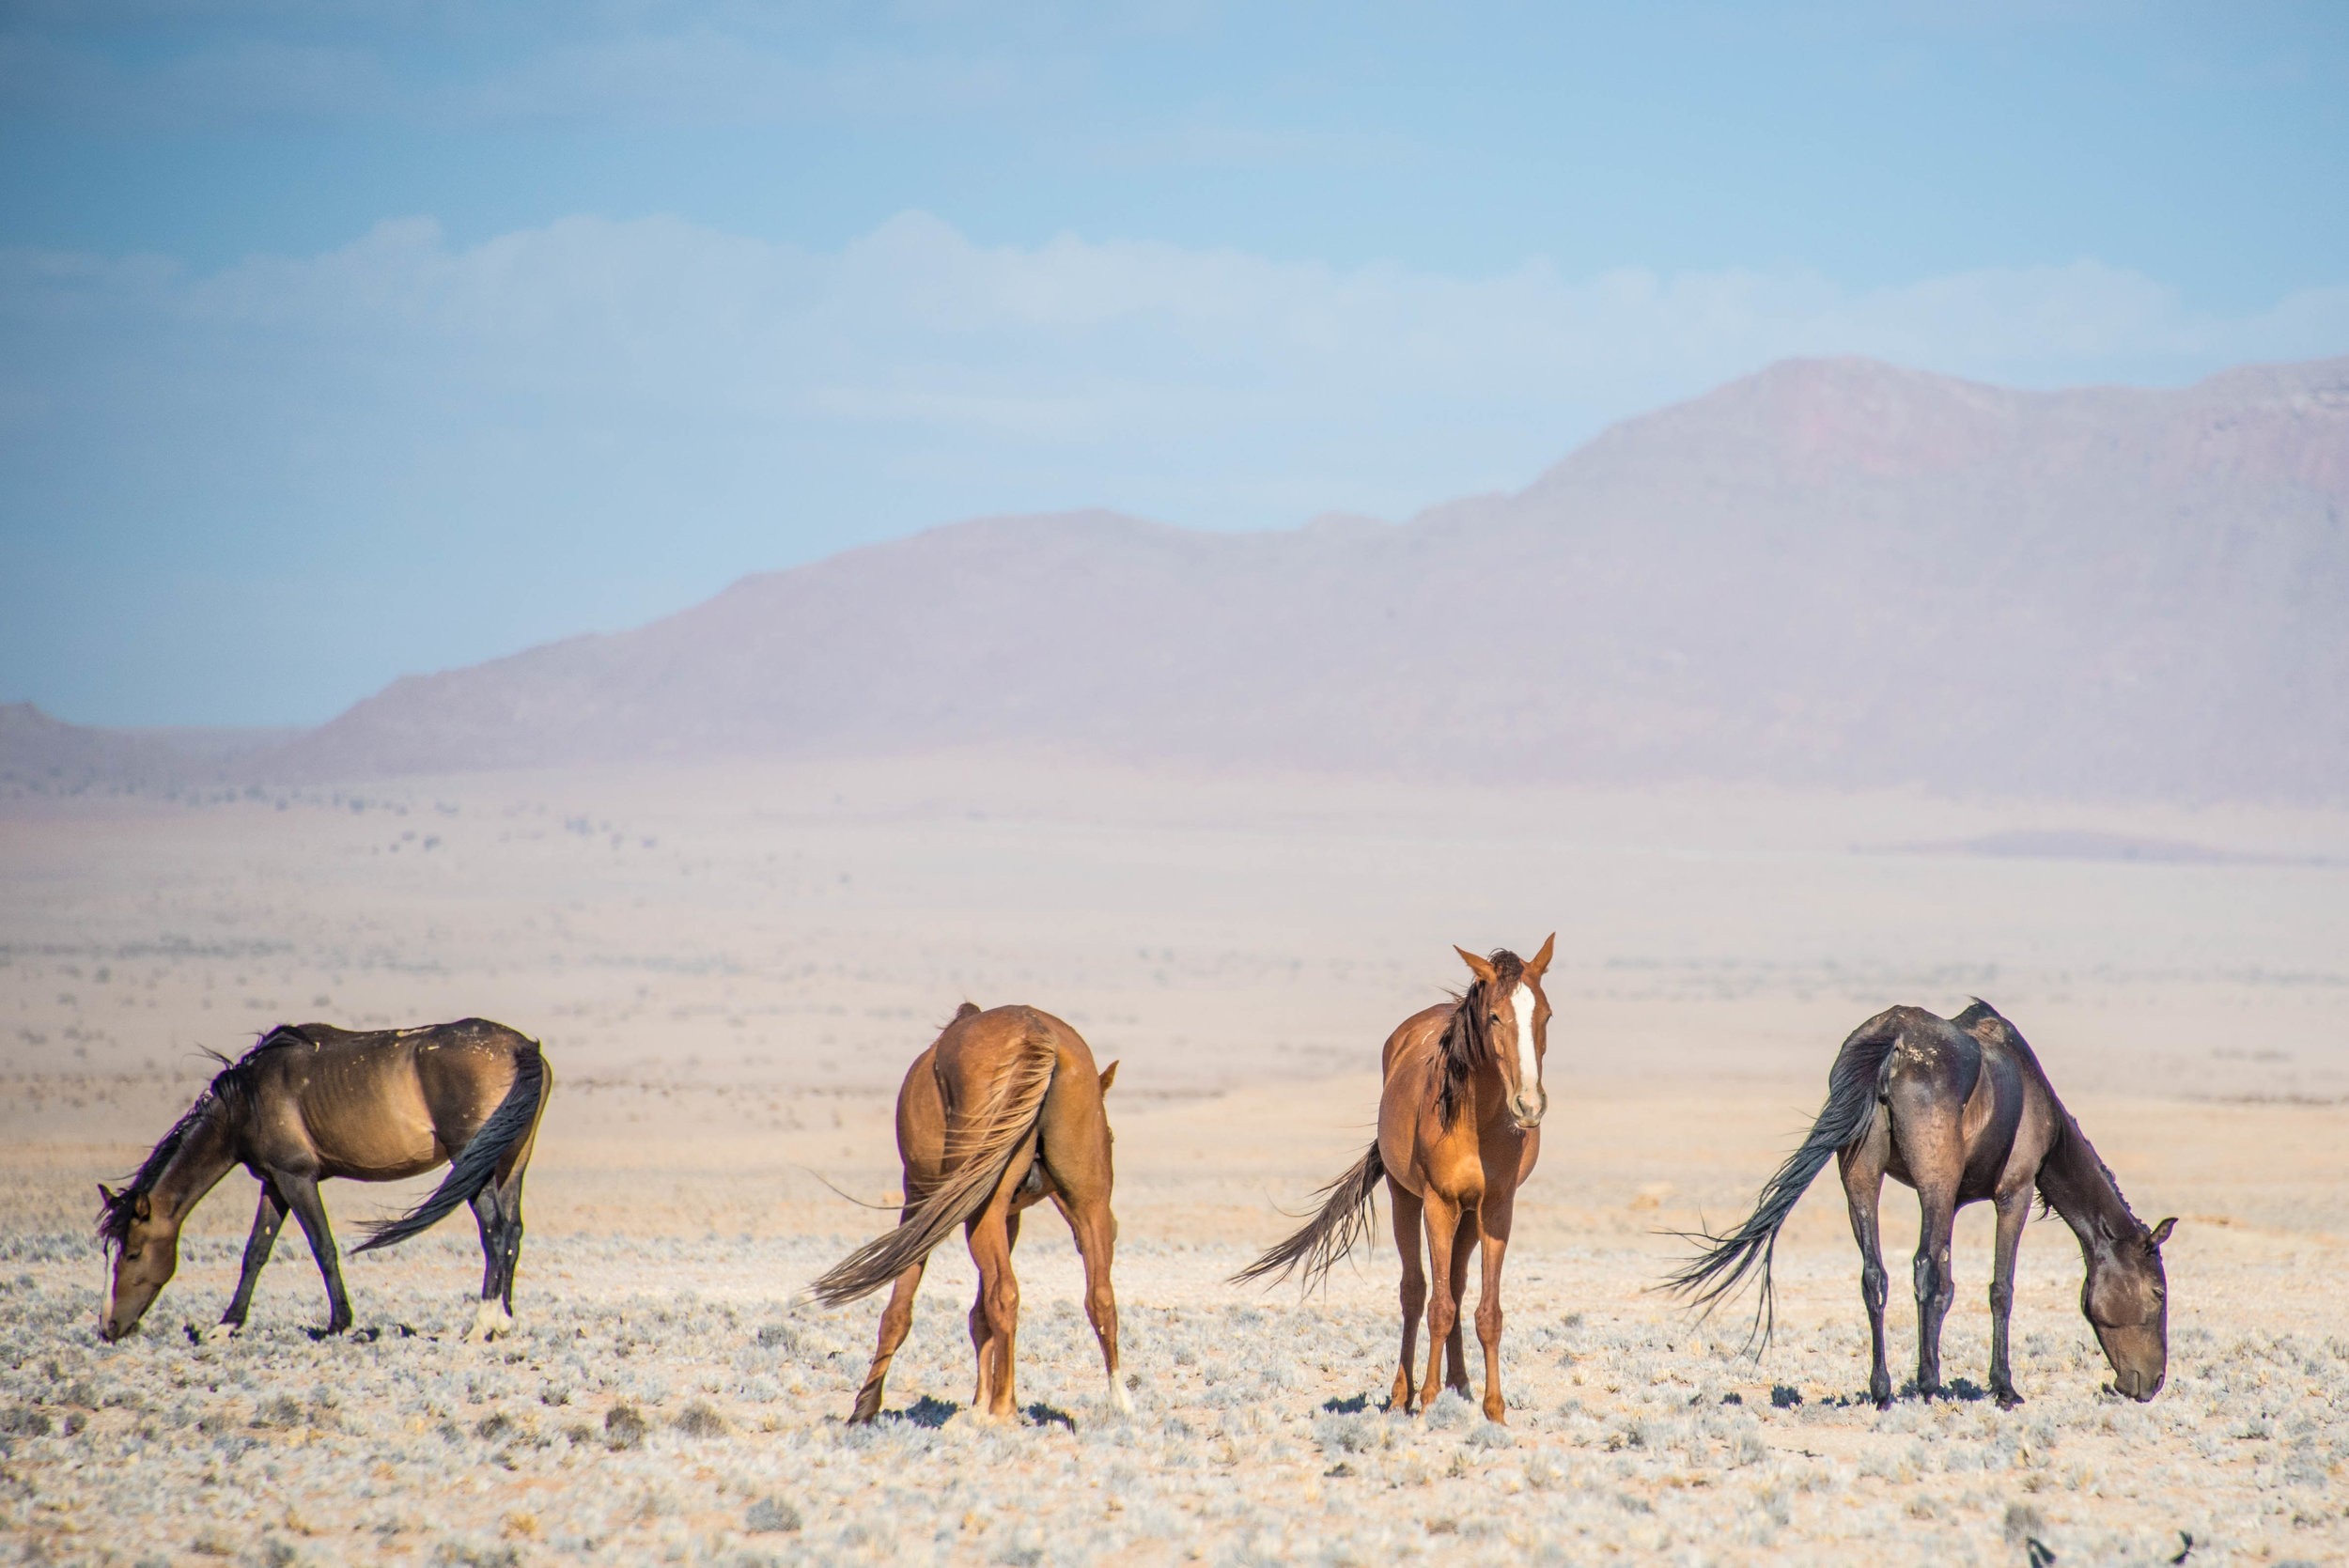 Wild horses of the Namib, just north of western South Africa.